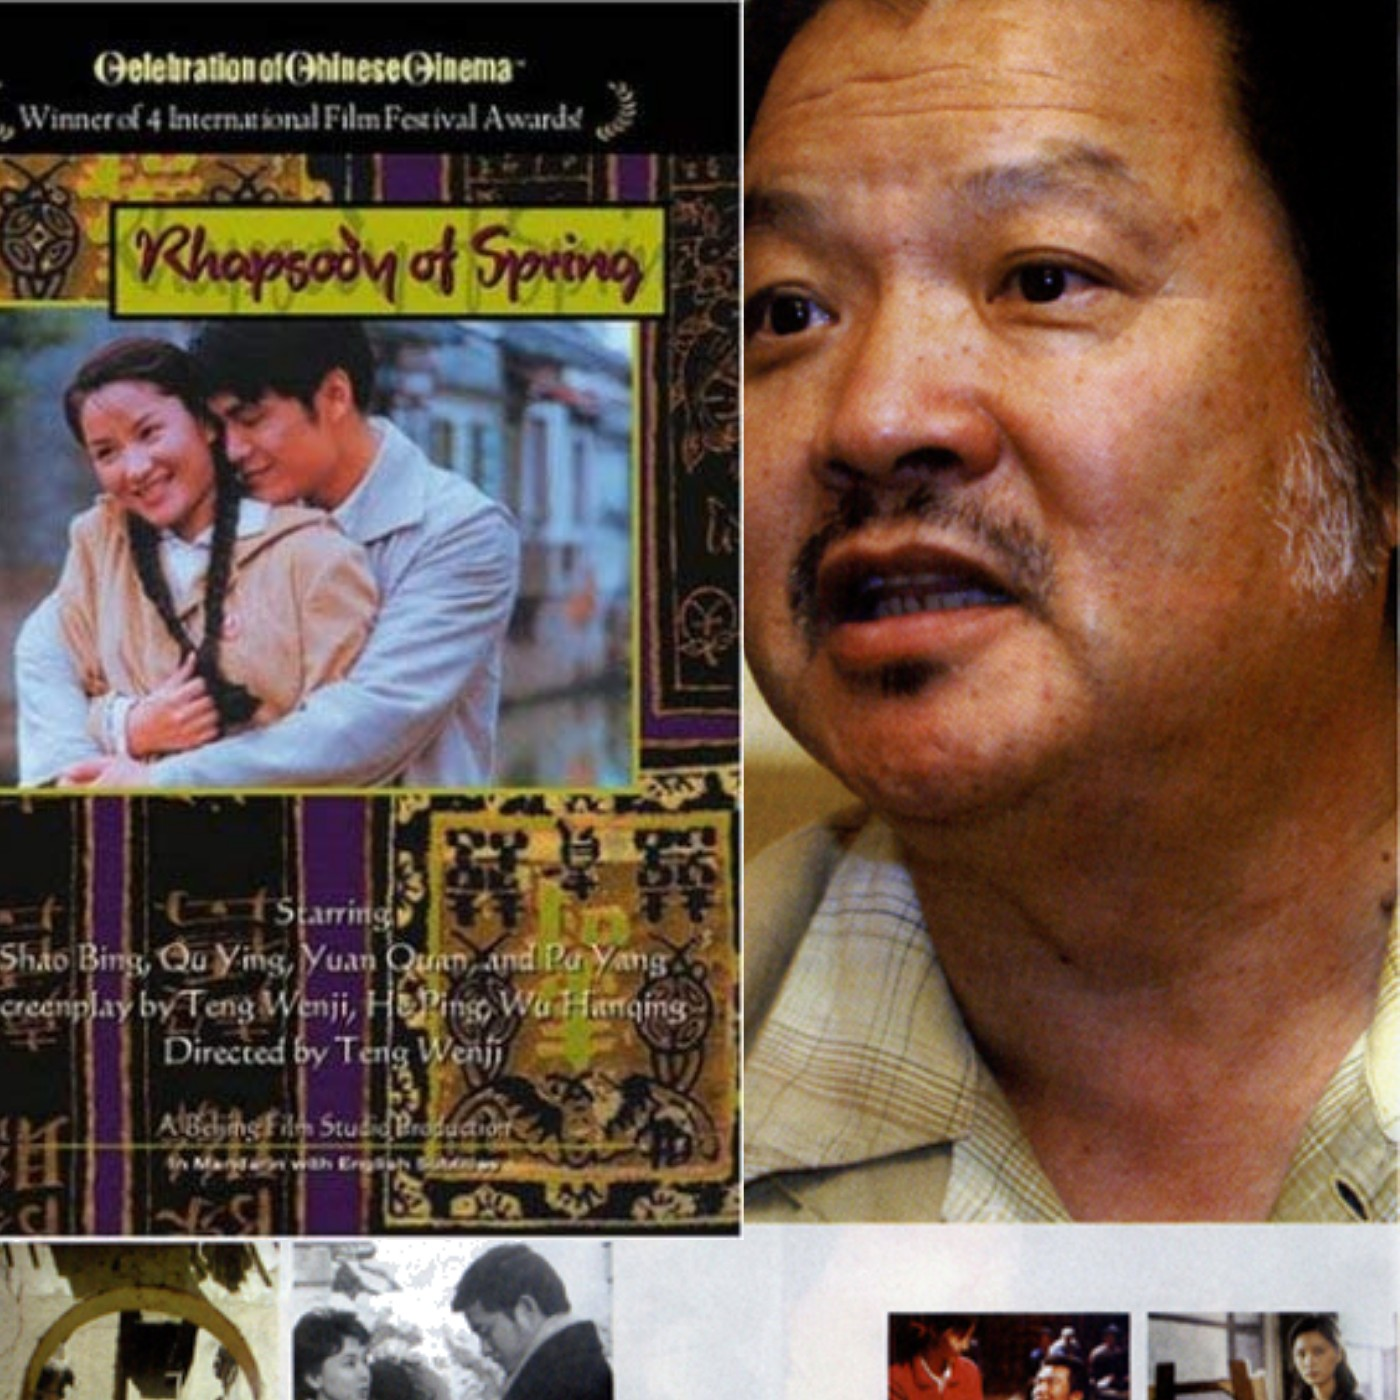 A talk with Master Storyteller Teng Wenji, most prominent director from the People's Republic of China